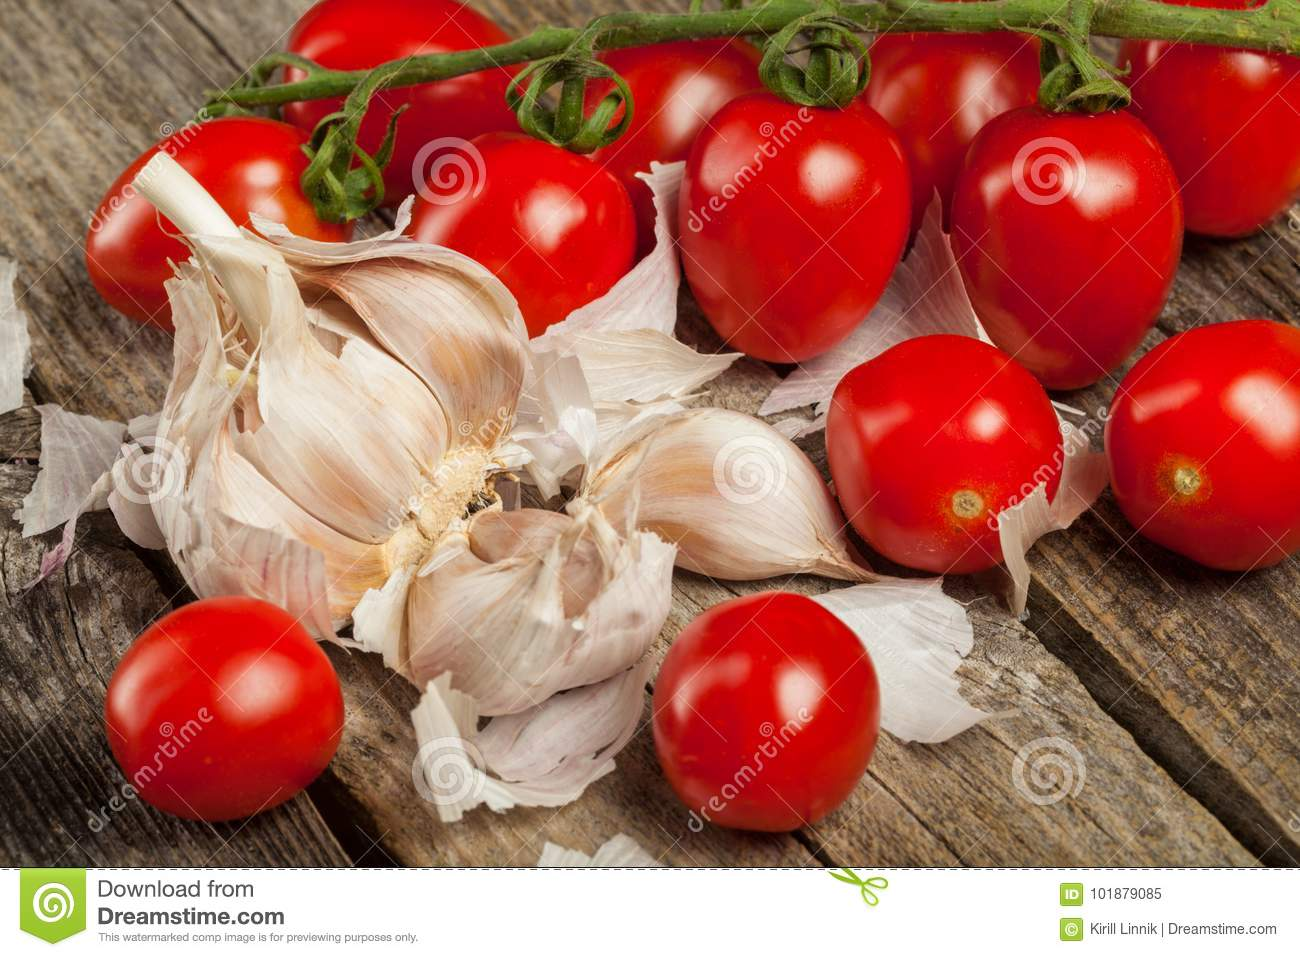 Download Tomatoes and garlic stock image. Image of meal, clove - 101879085